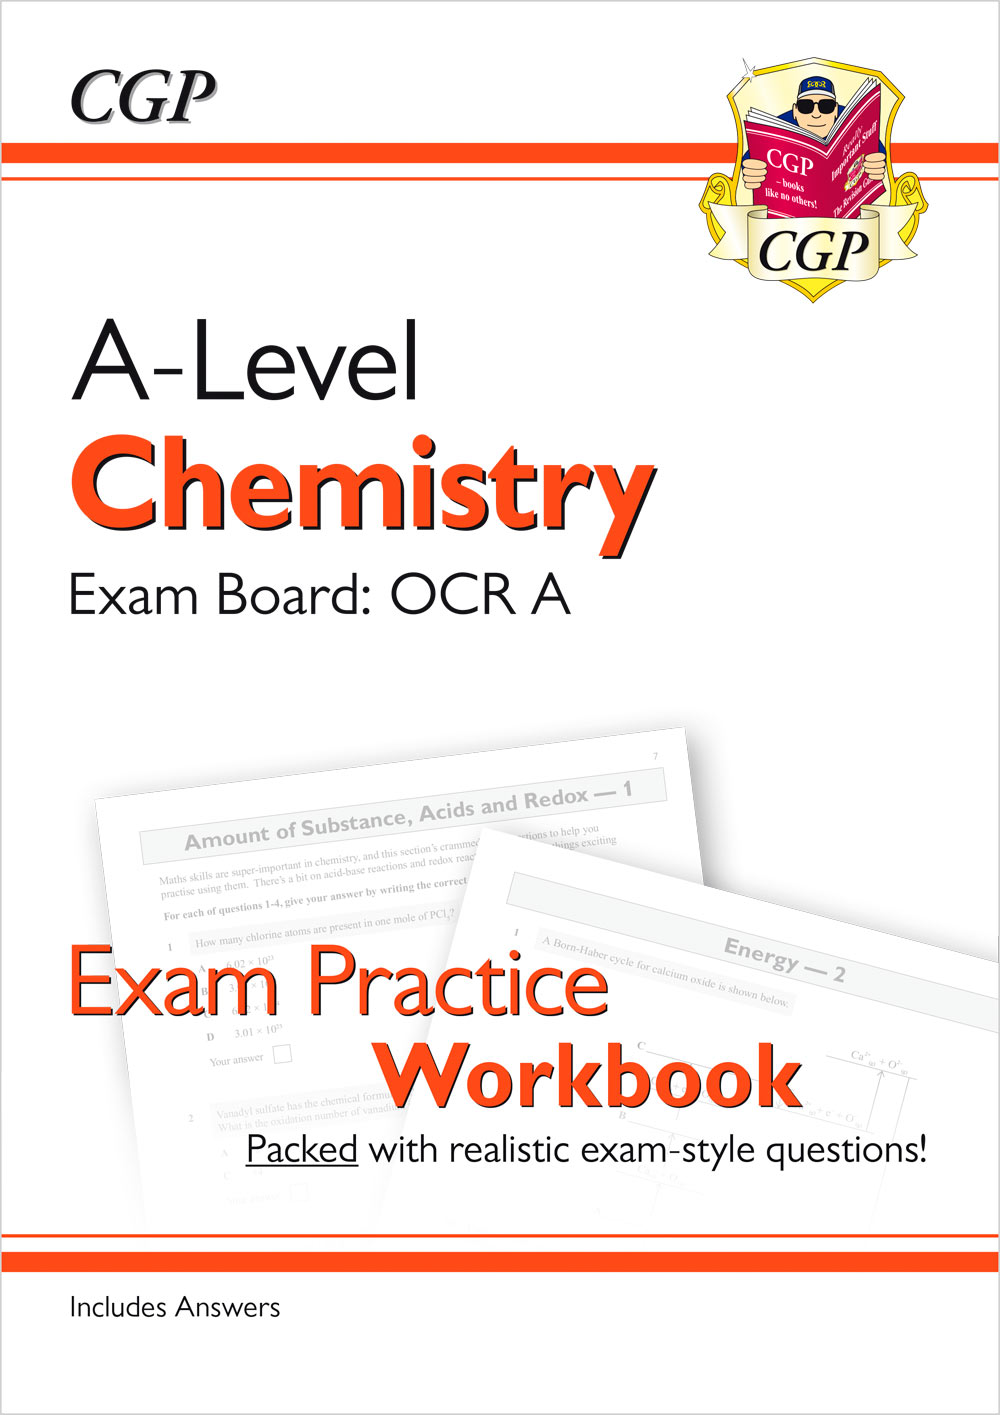 CRAQ71 - A-Level Chemistry: OCR A Year 1 & 2 Exam Practice Workbook - includes Answers